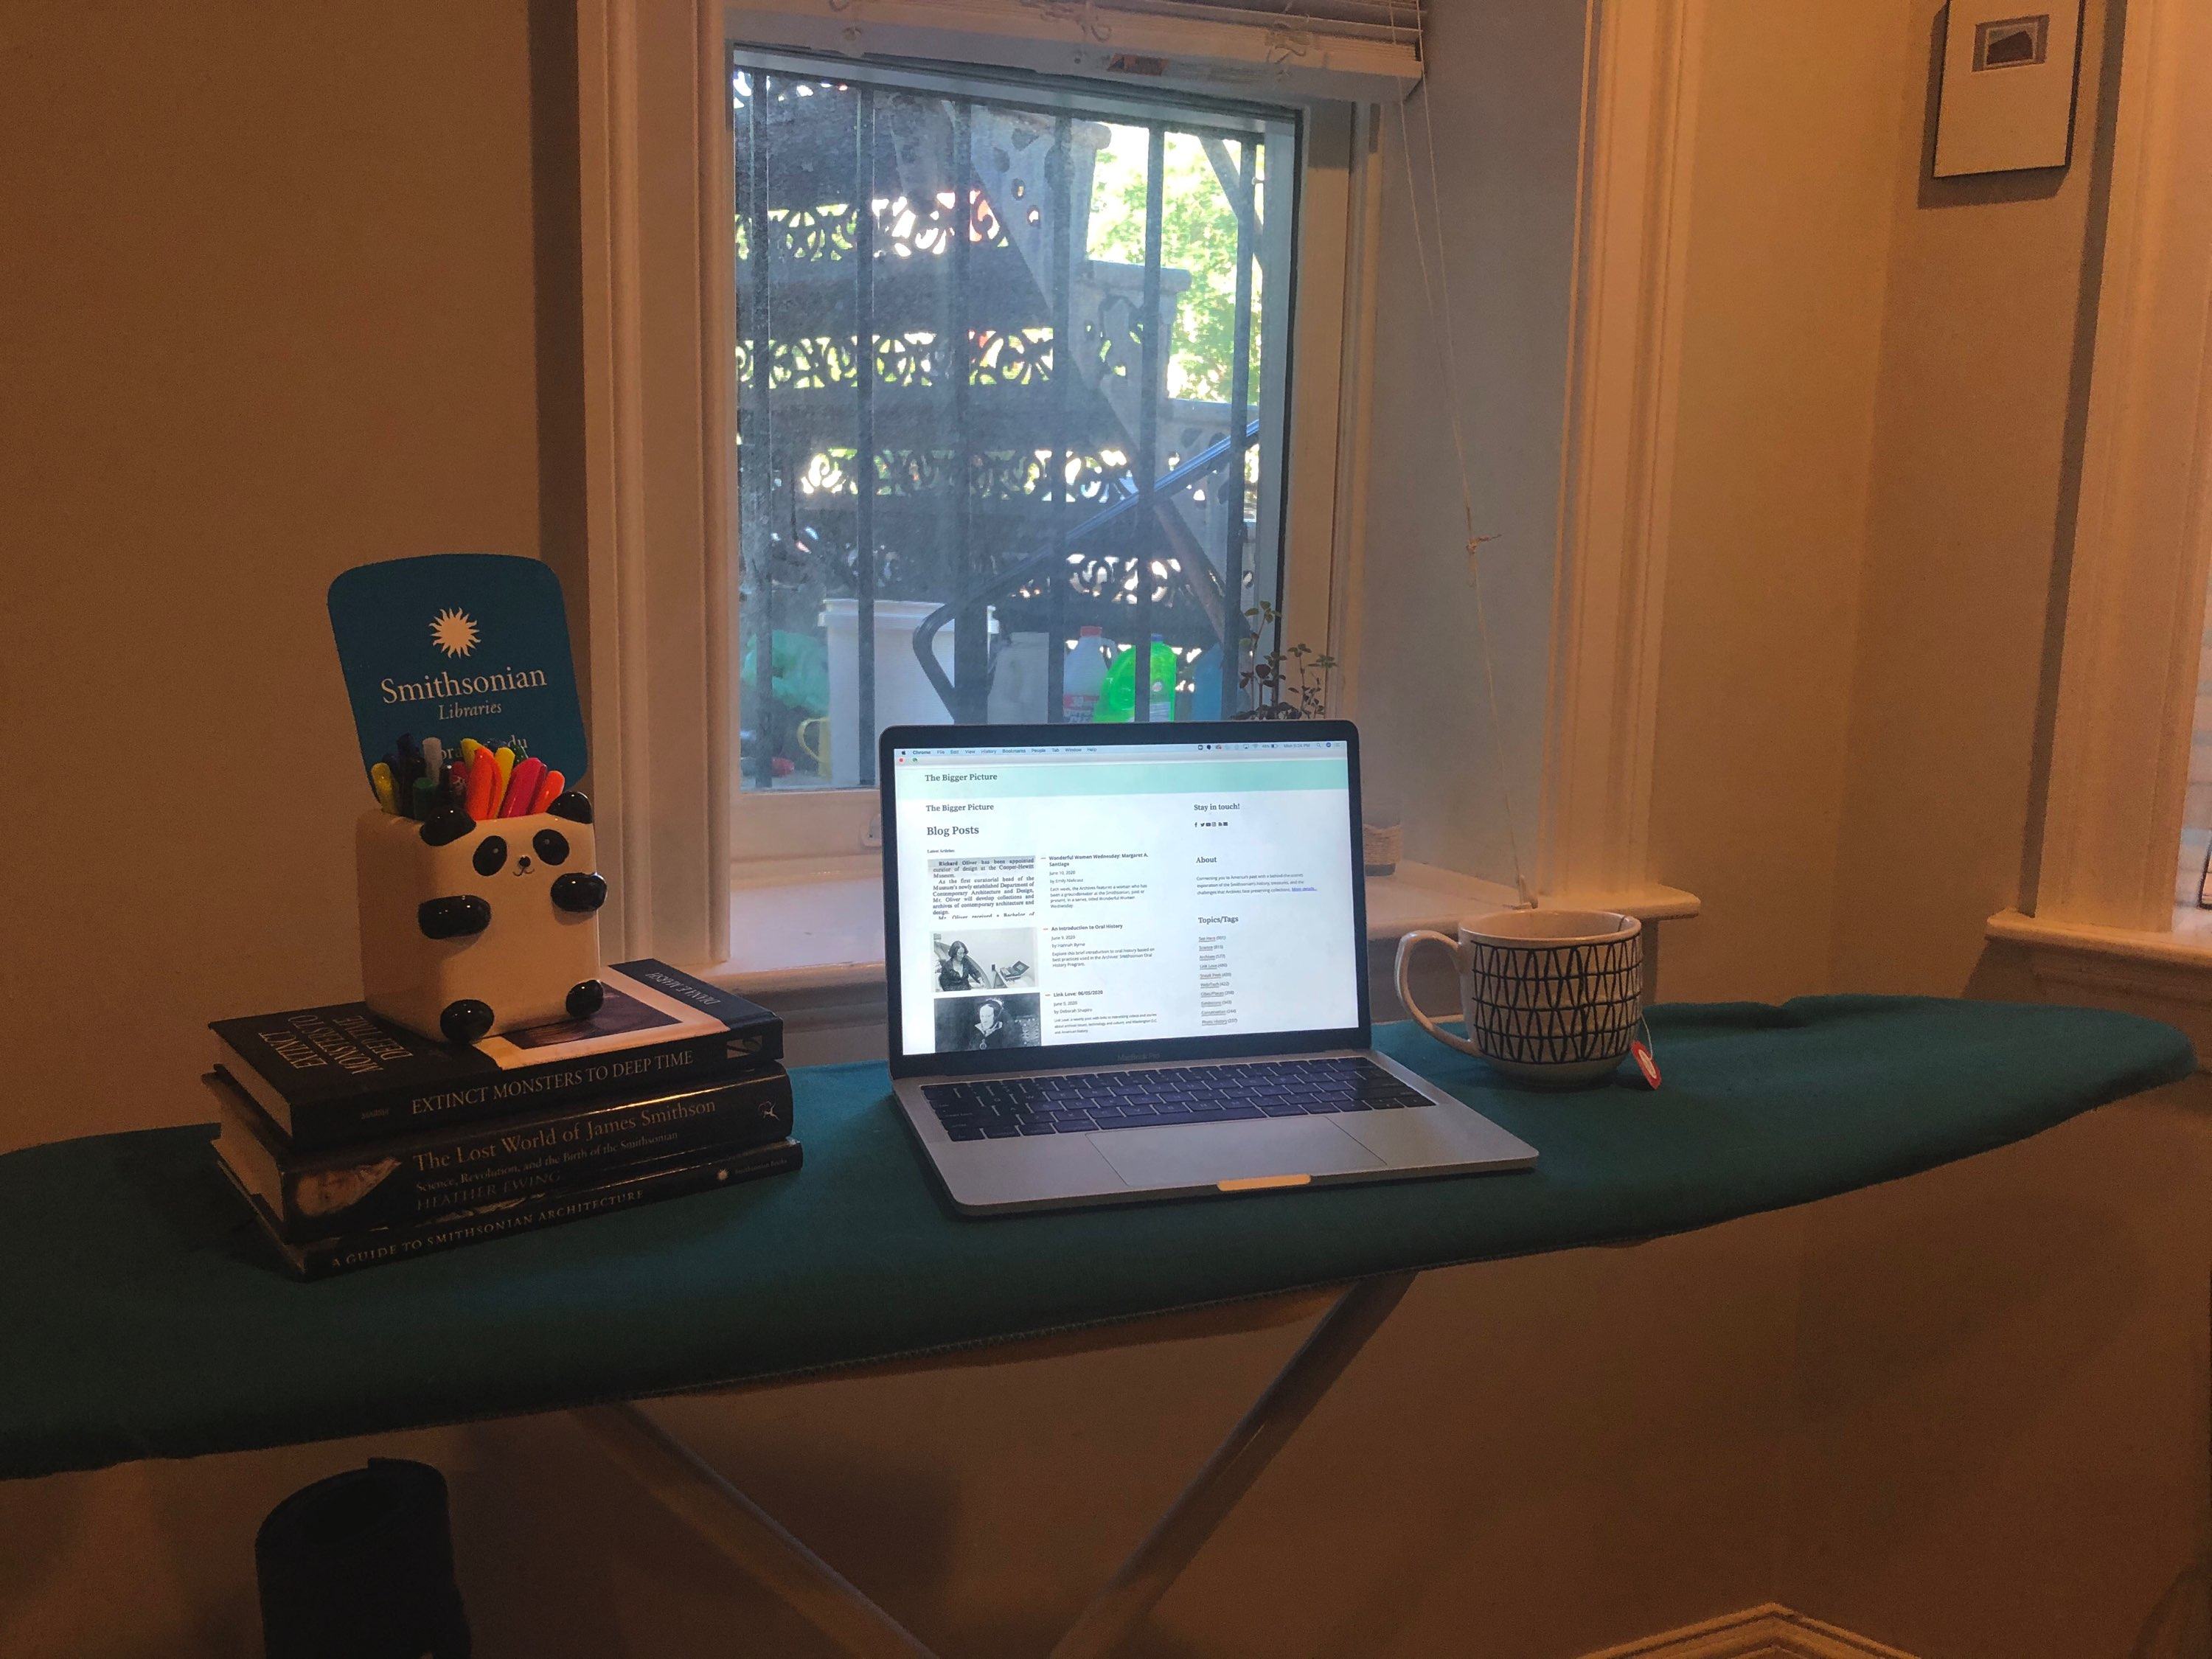 A laptop and books on an ironing board.